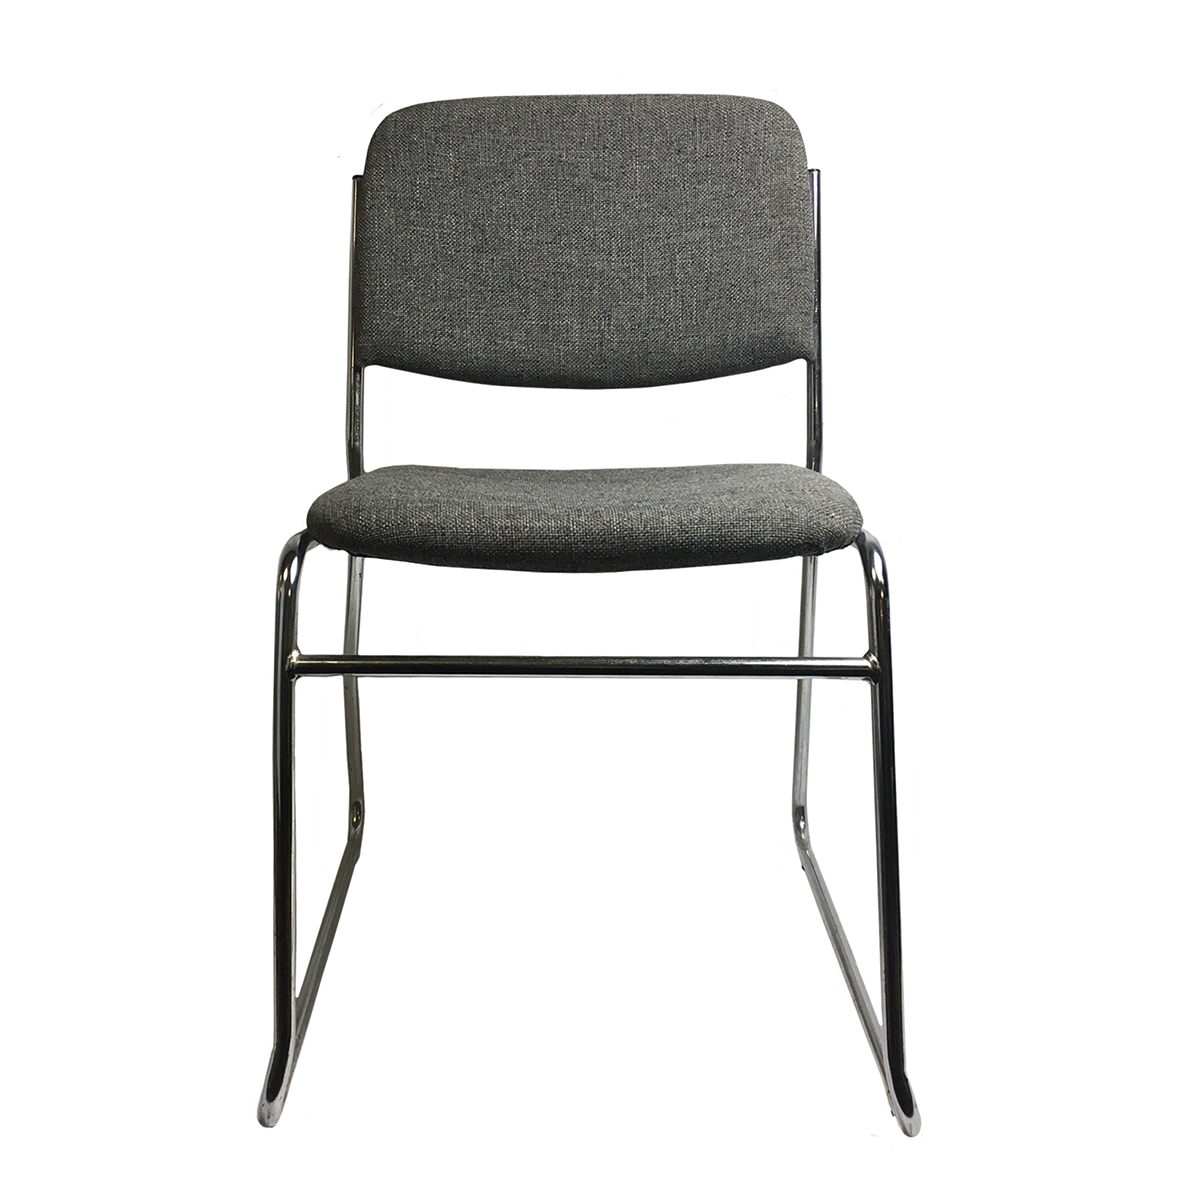 Chair Grey Padded Stacking With Chrome Frame